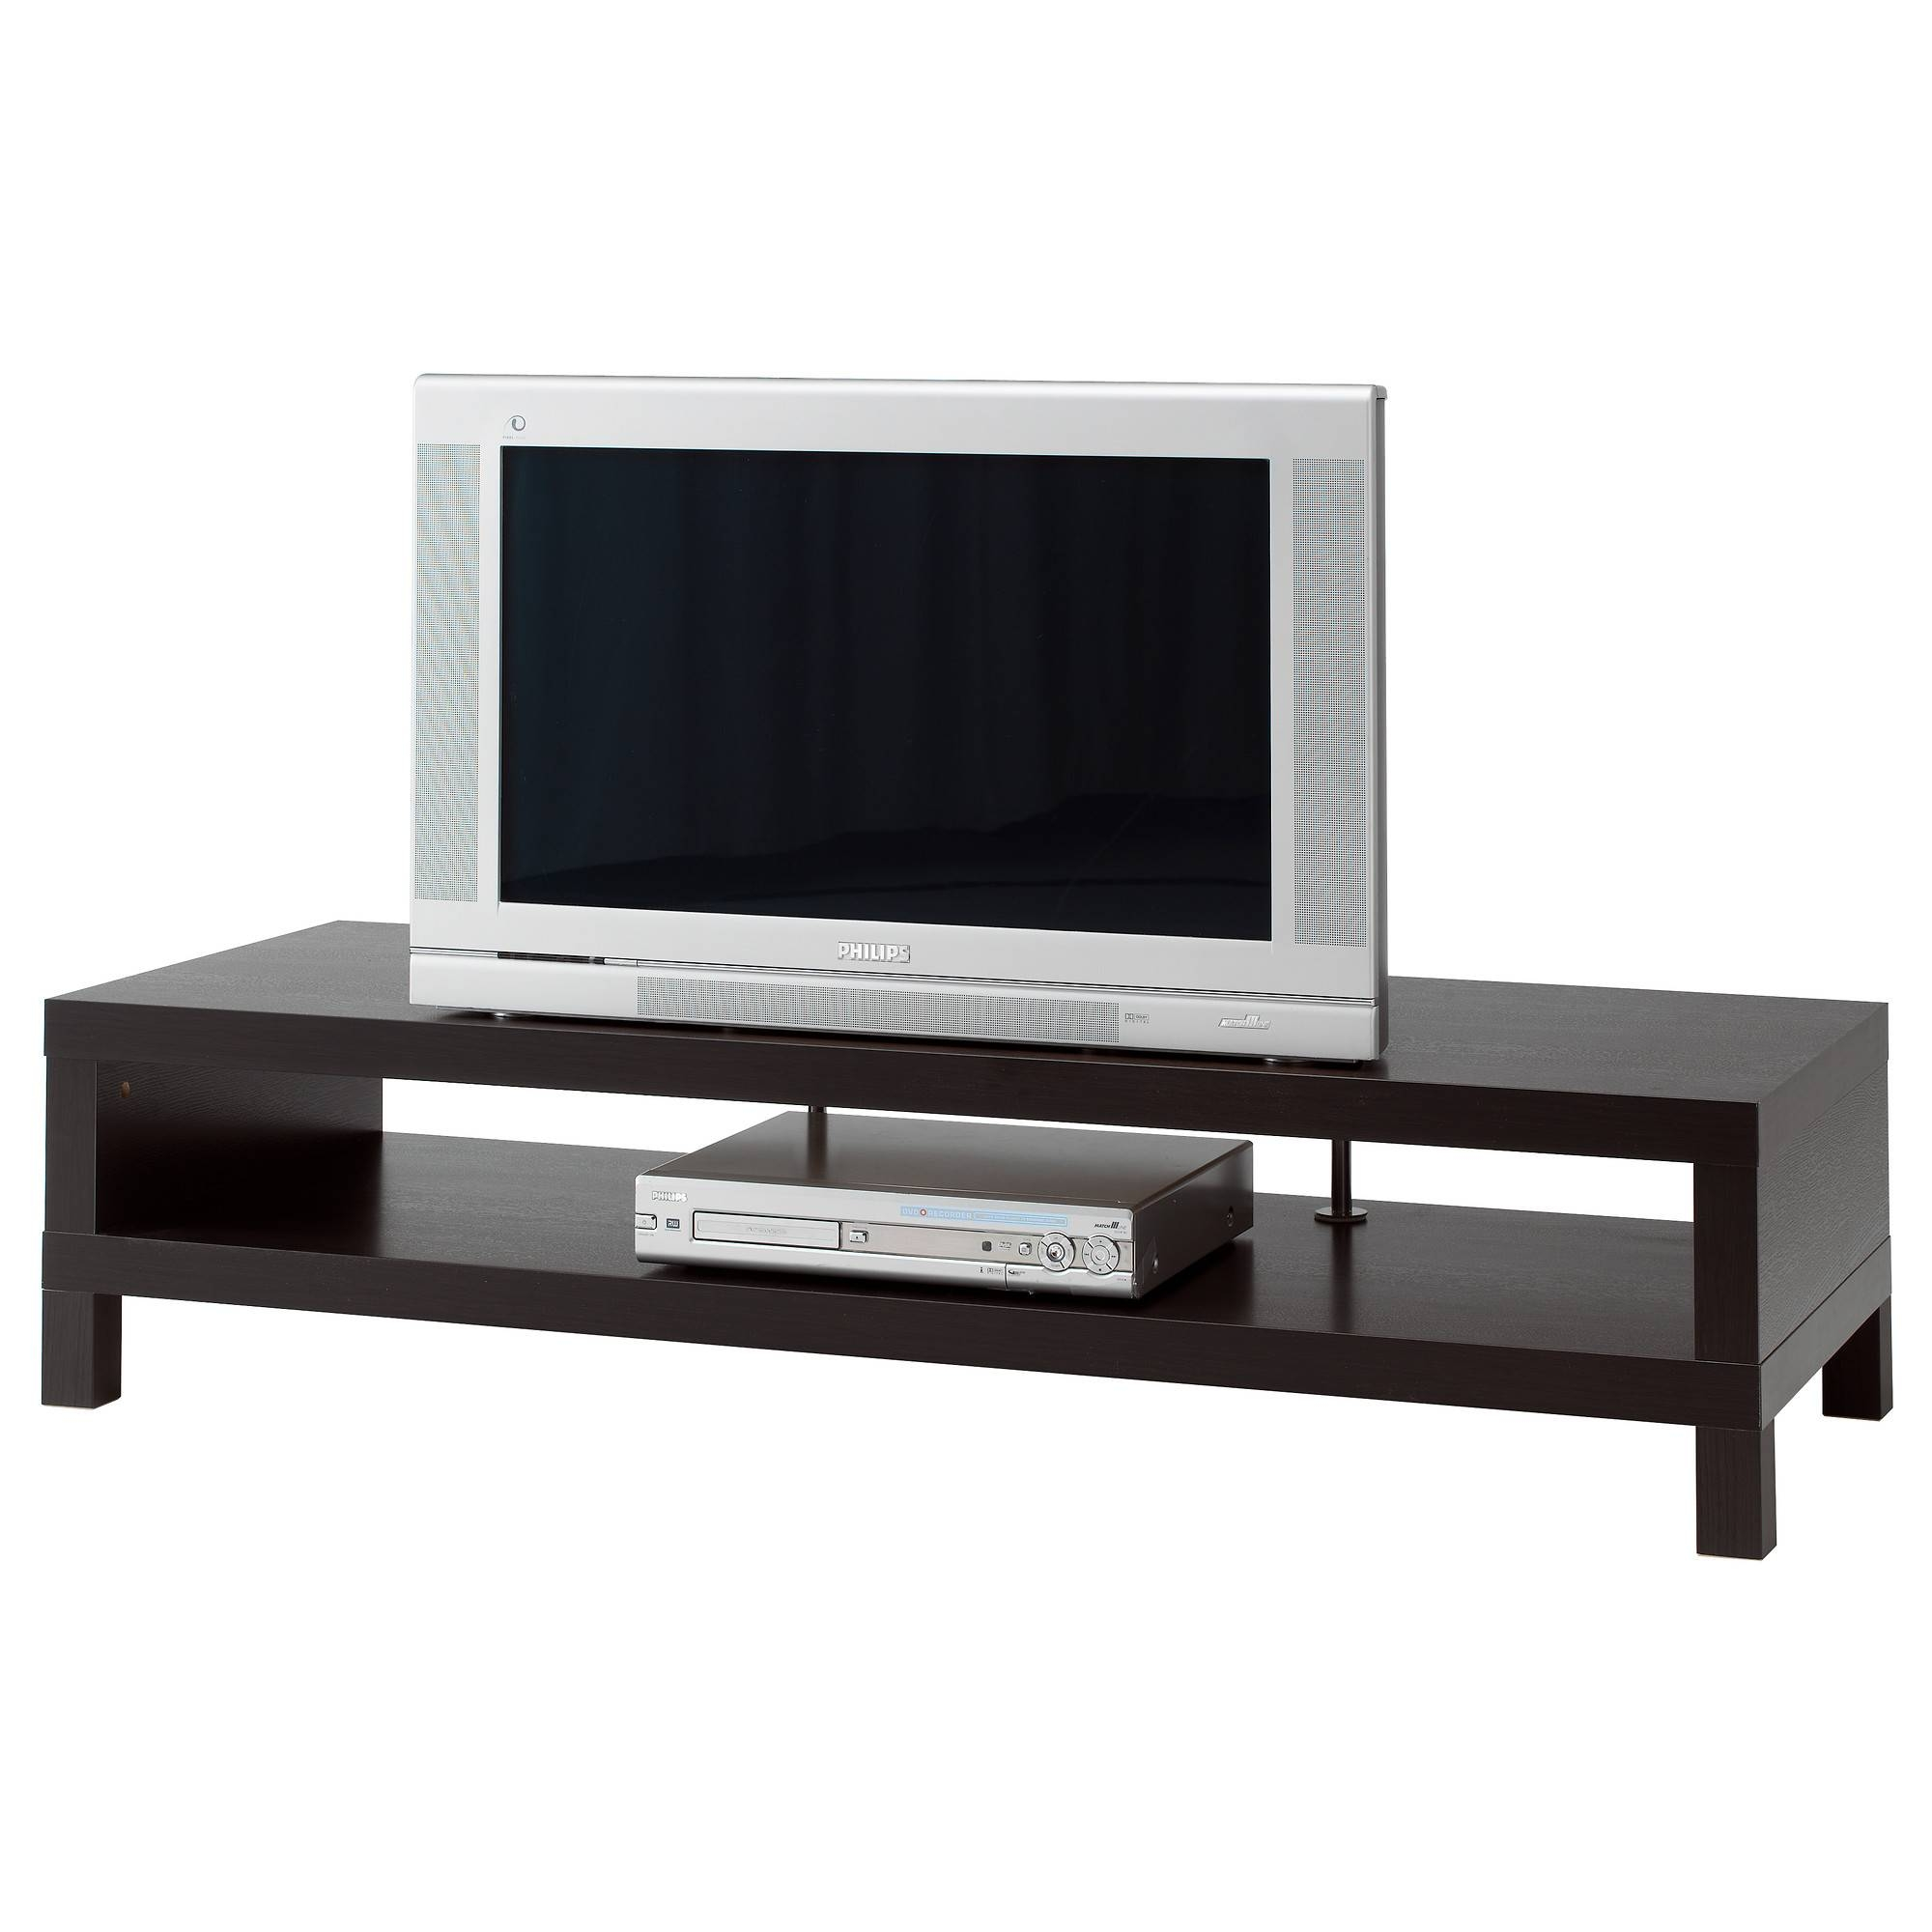 Tv Media Furniture – Tv Stands, Cabinets & Media Storage – Ikea Inside Long Low Tv Cabinets (View 10 of 15)